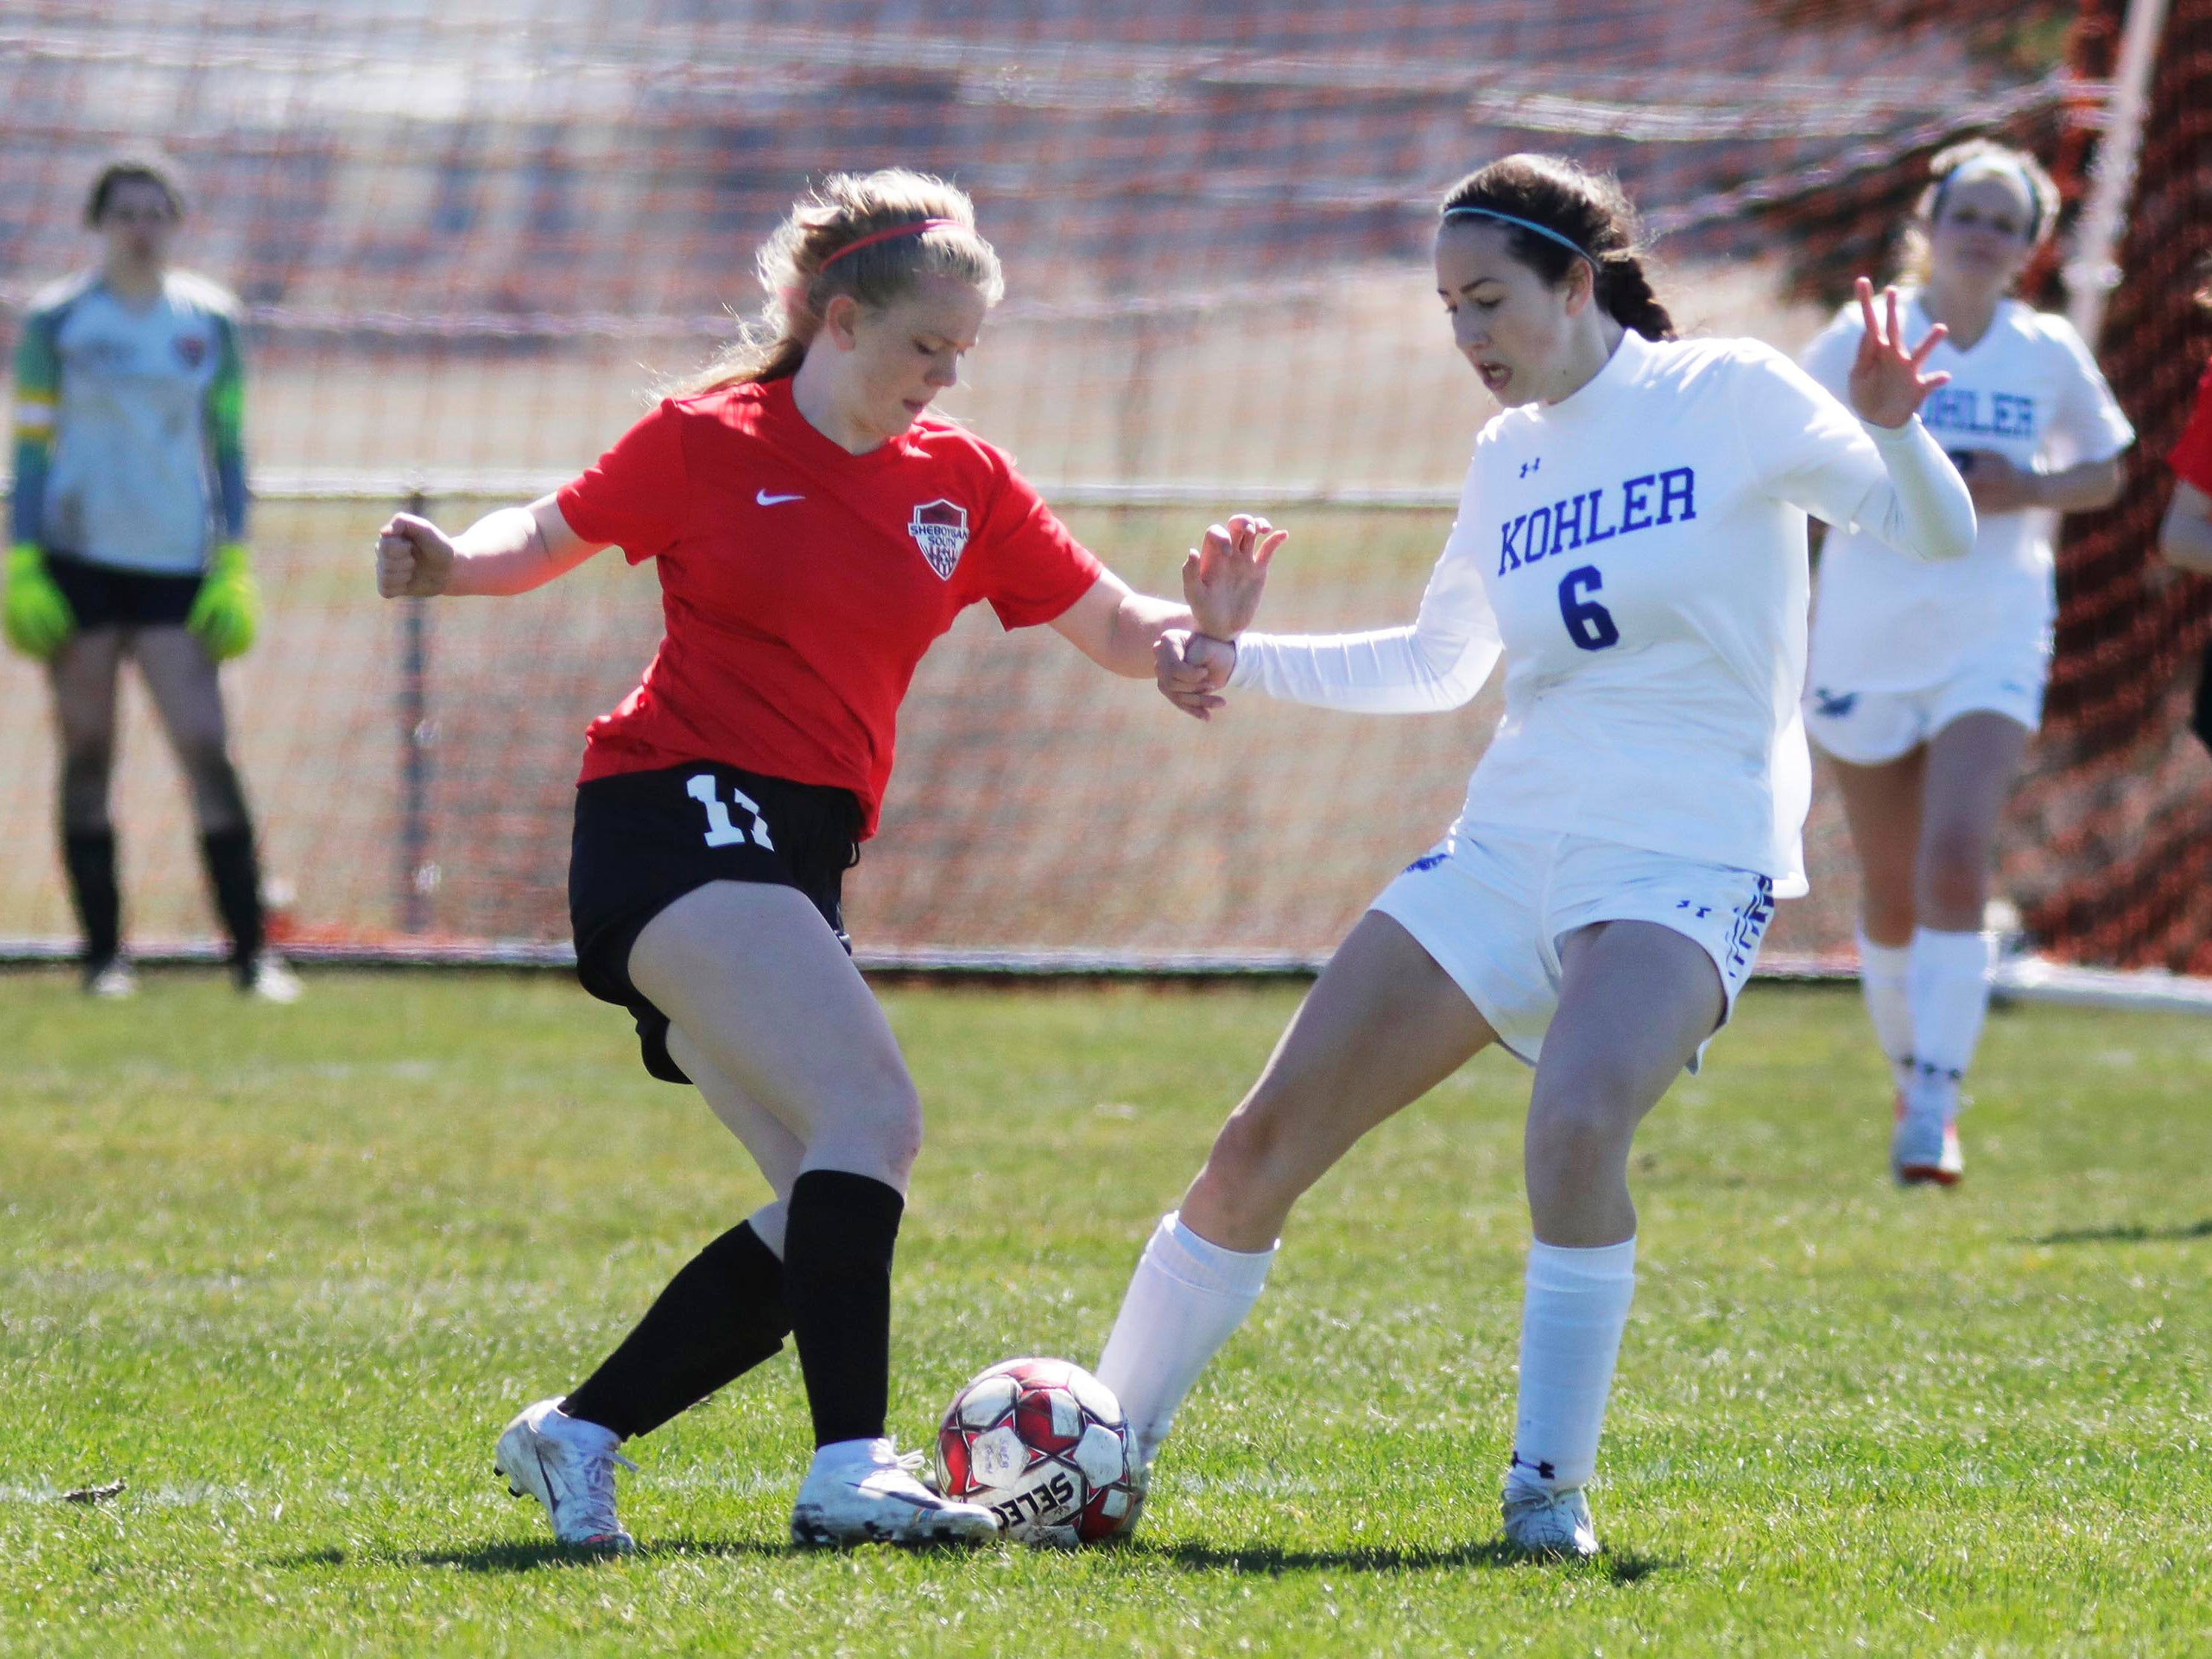 Sheboygan South's Lily Lunginbill (11) moves the ball by Kohler's Fiona Hidri (6) at the Sheboygan South Soccer tournament, Saturday, April 20, 2019, in Sheboygan, Wis.